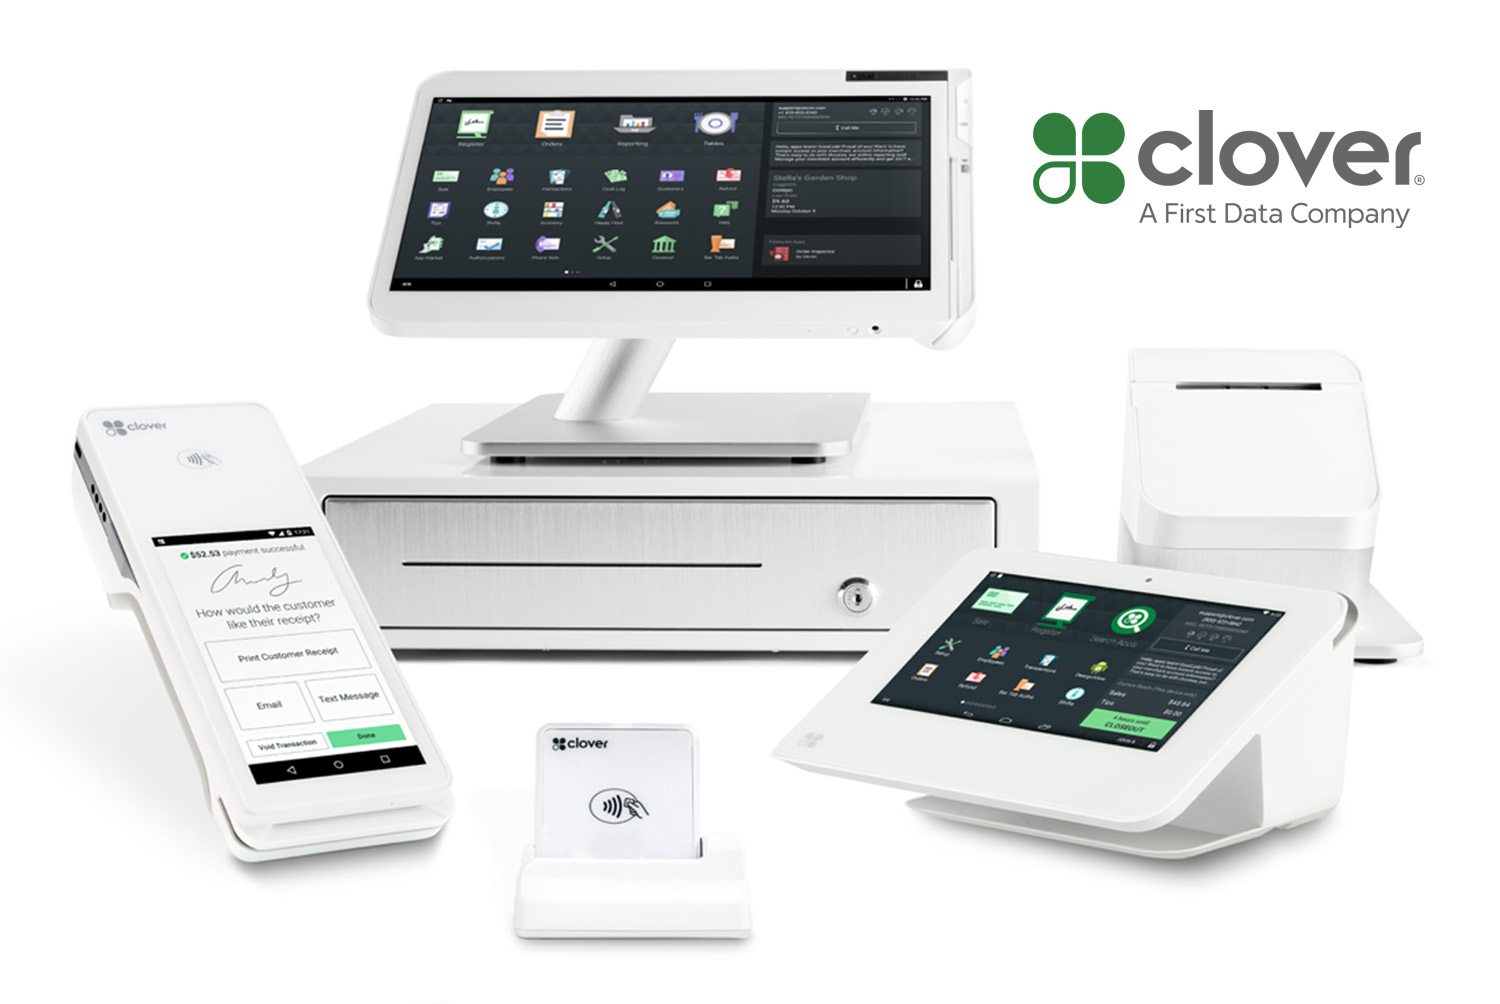 pos systems us - clover